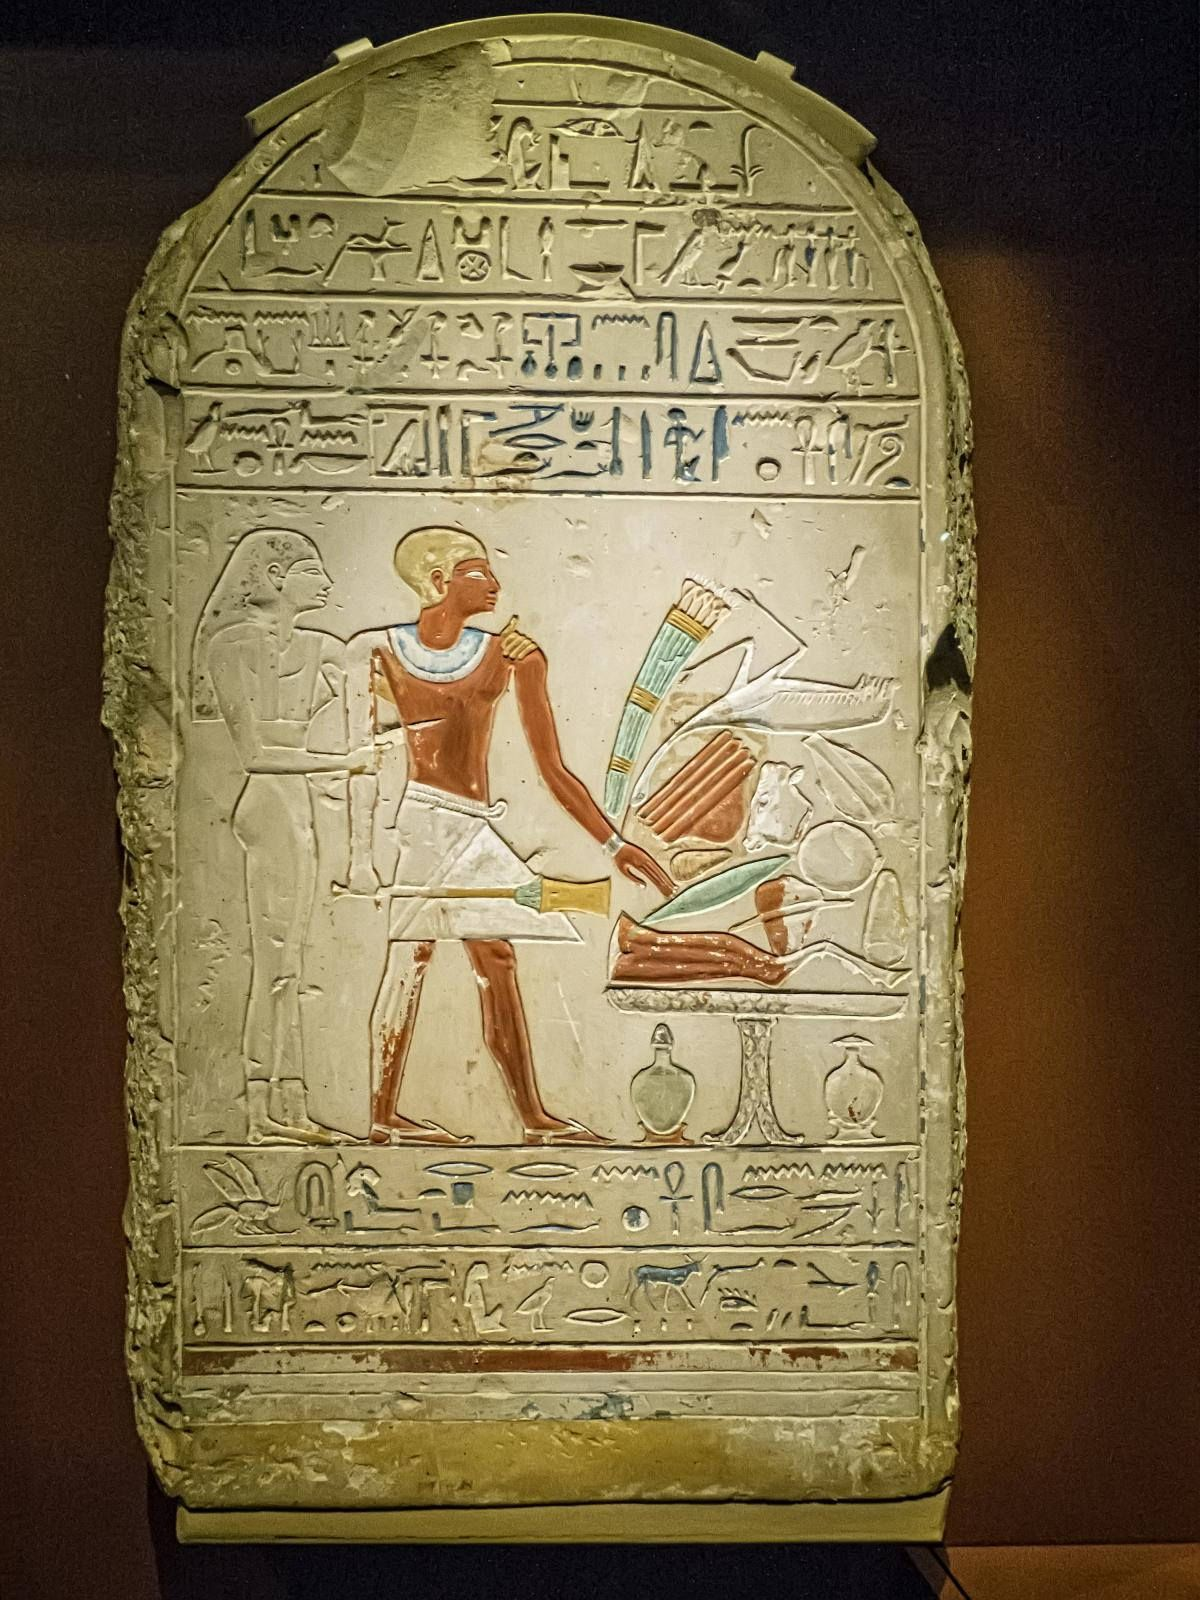 https://flic.kr/p/NM7VTh | Stele depicting the deceased with an offering table laden with food Abydos, Egypt Middle Kingdom 12th Dynasty 1970-1950 BCE Limestone | Photographed at the Nelson-Atkins Museum of Art, Kansas City, Missouri.